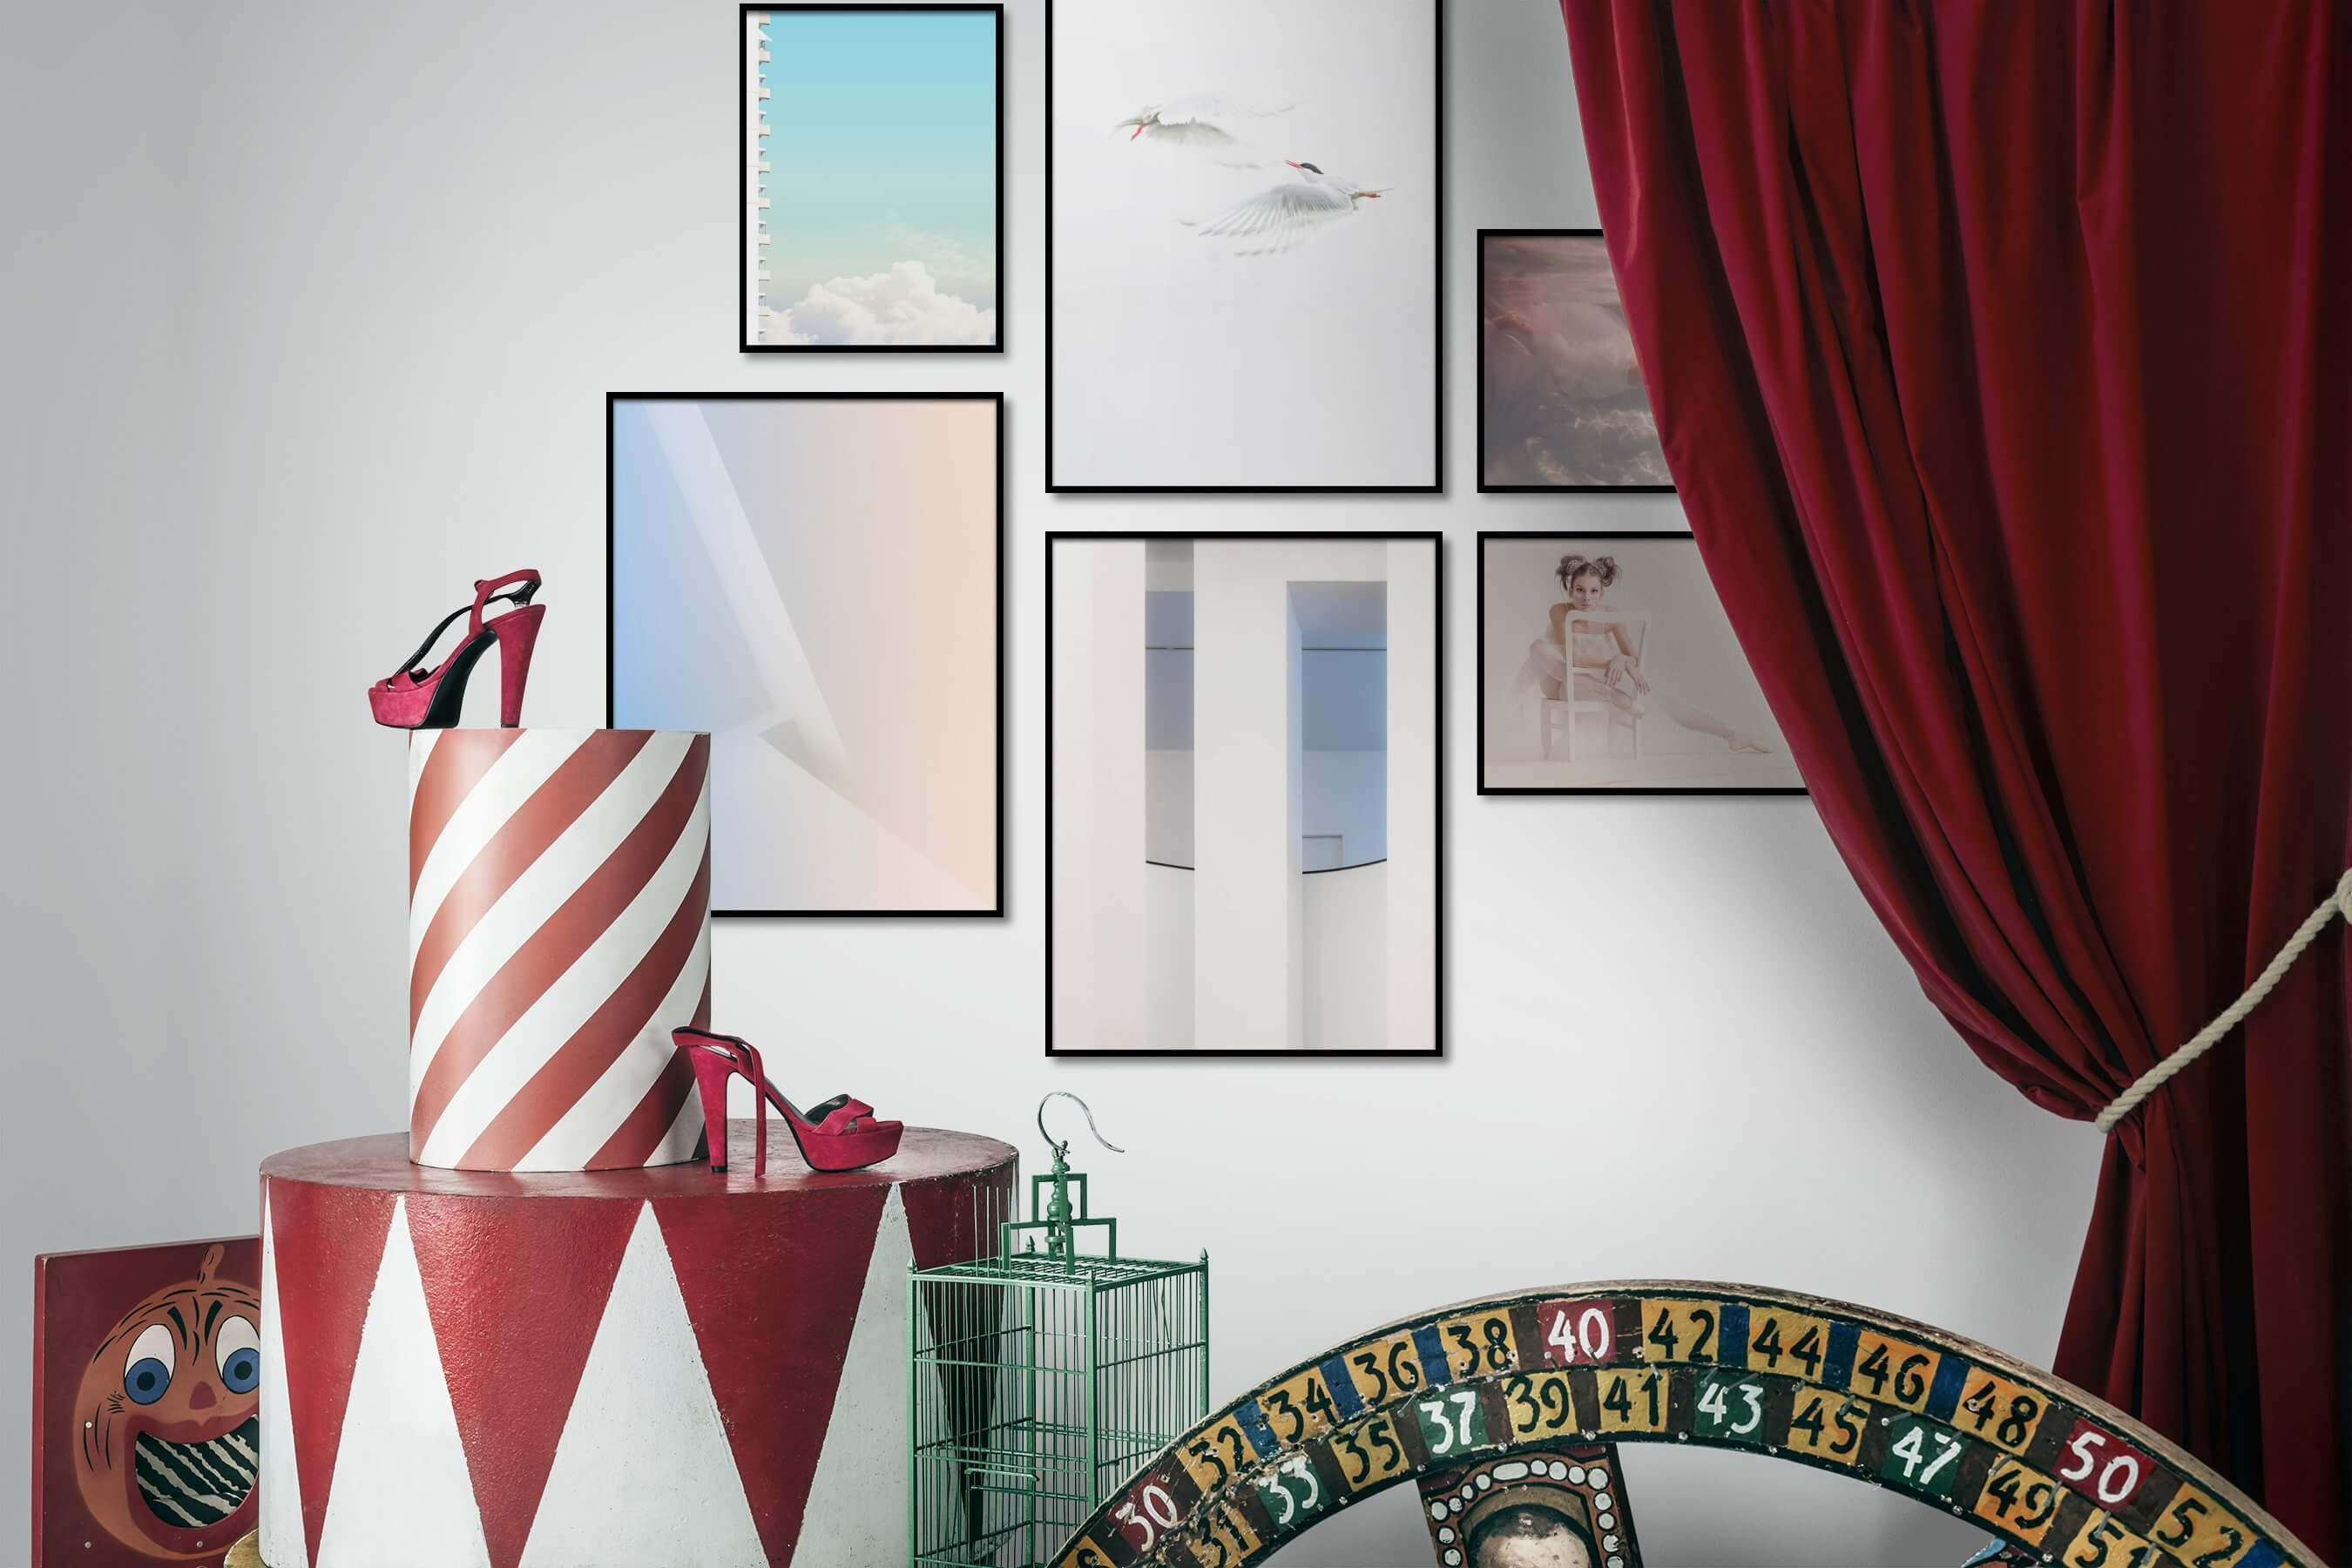 Gallery wall idea with six framed pictures arranged on a wall depicting For the Minimalist, City Life, Mindfulness, Bright Tones, Animals, Fashion & Beauty, and Beach & Water